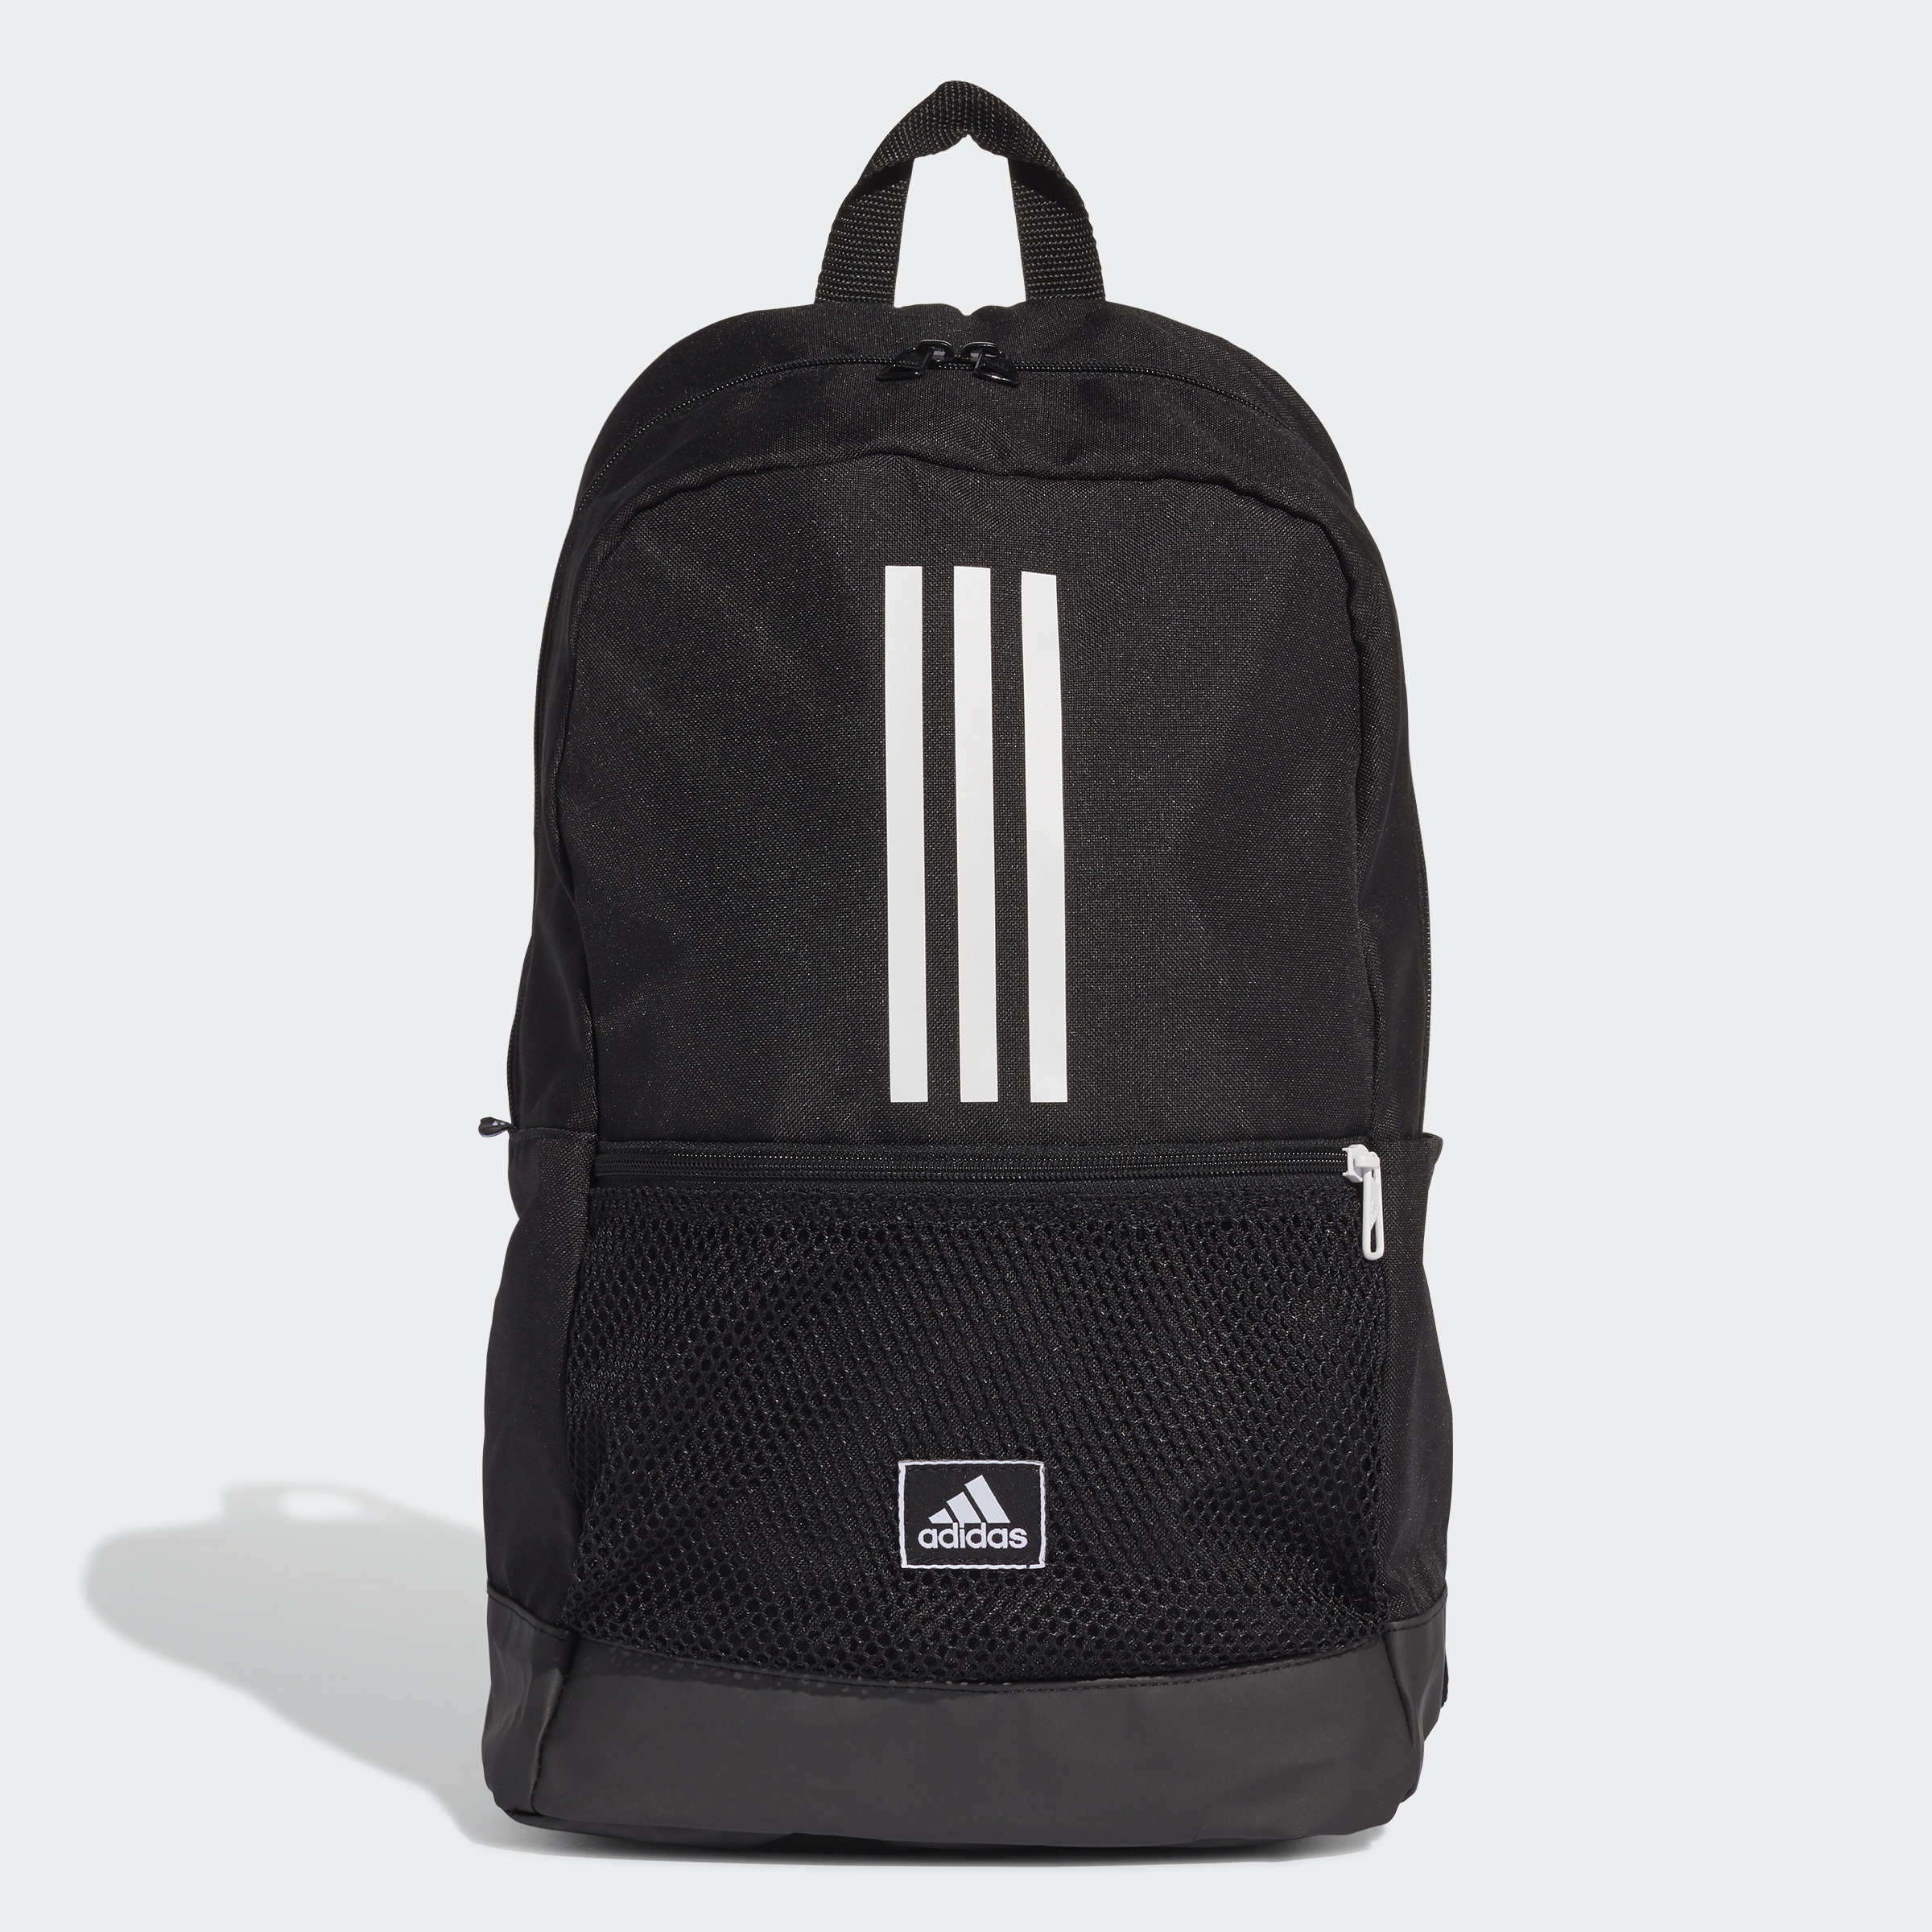 adidas-Classic-3-Stripes-Backpack-Bags thumbnail 15